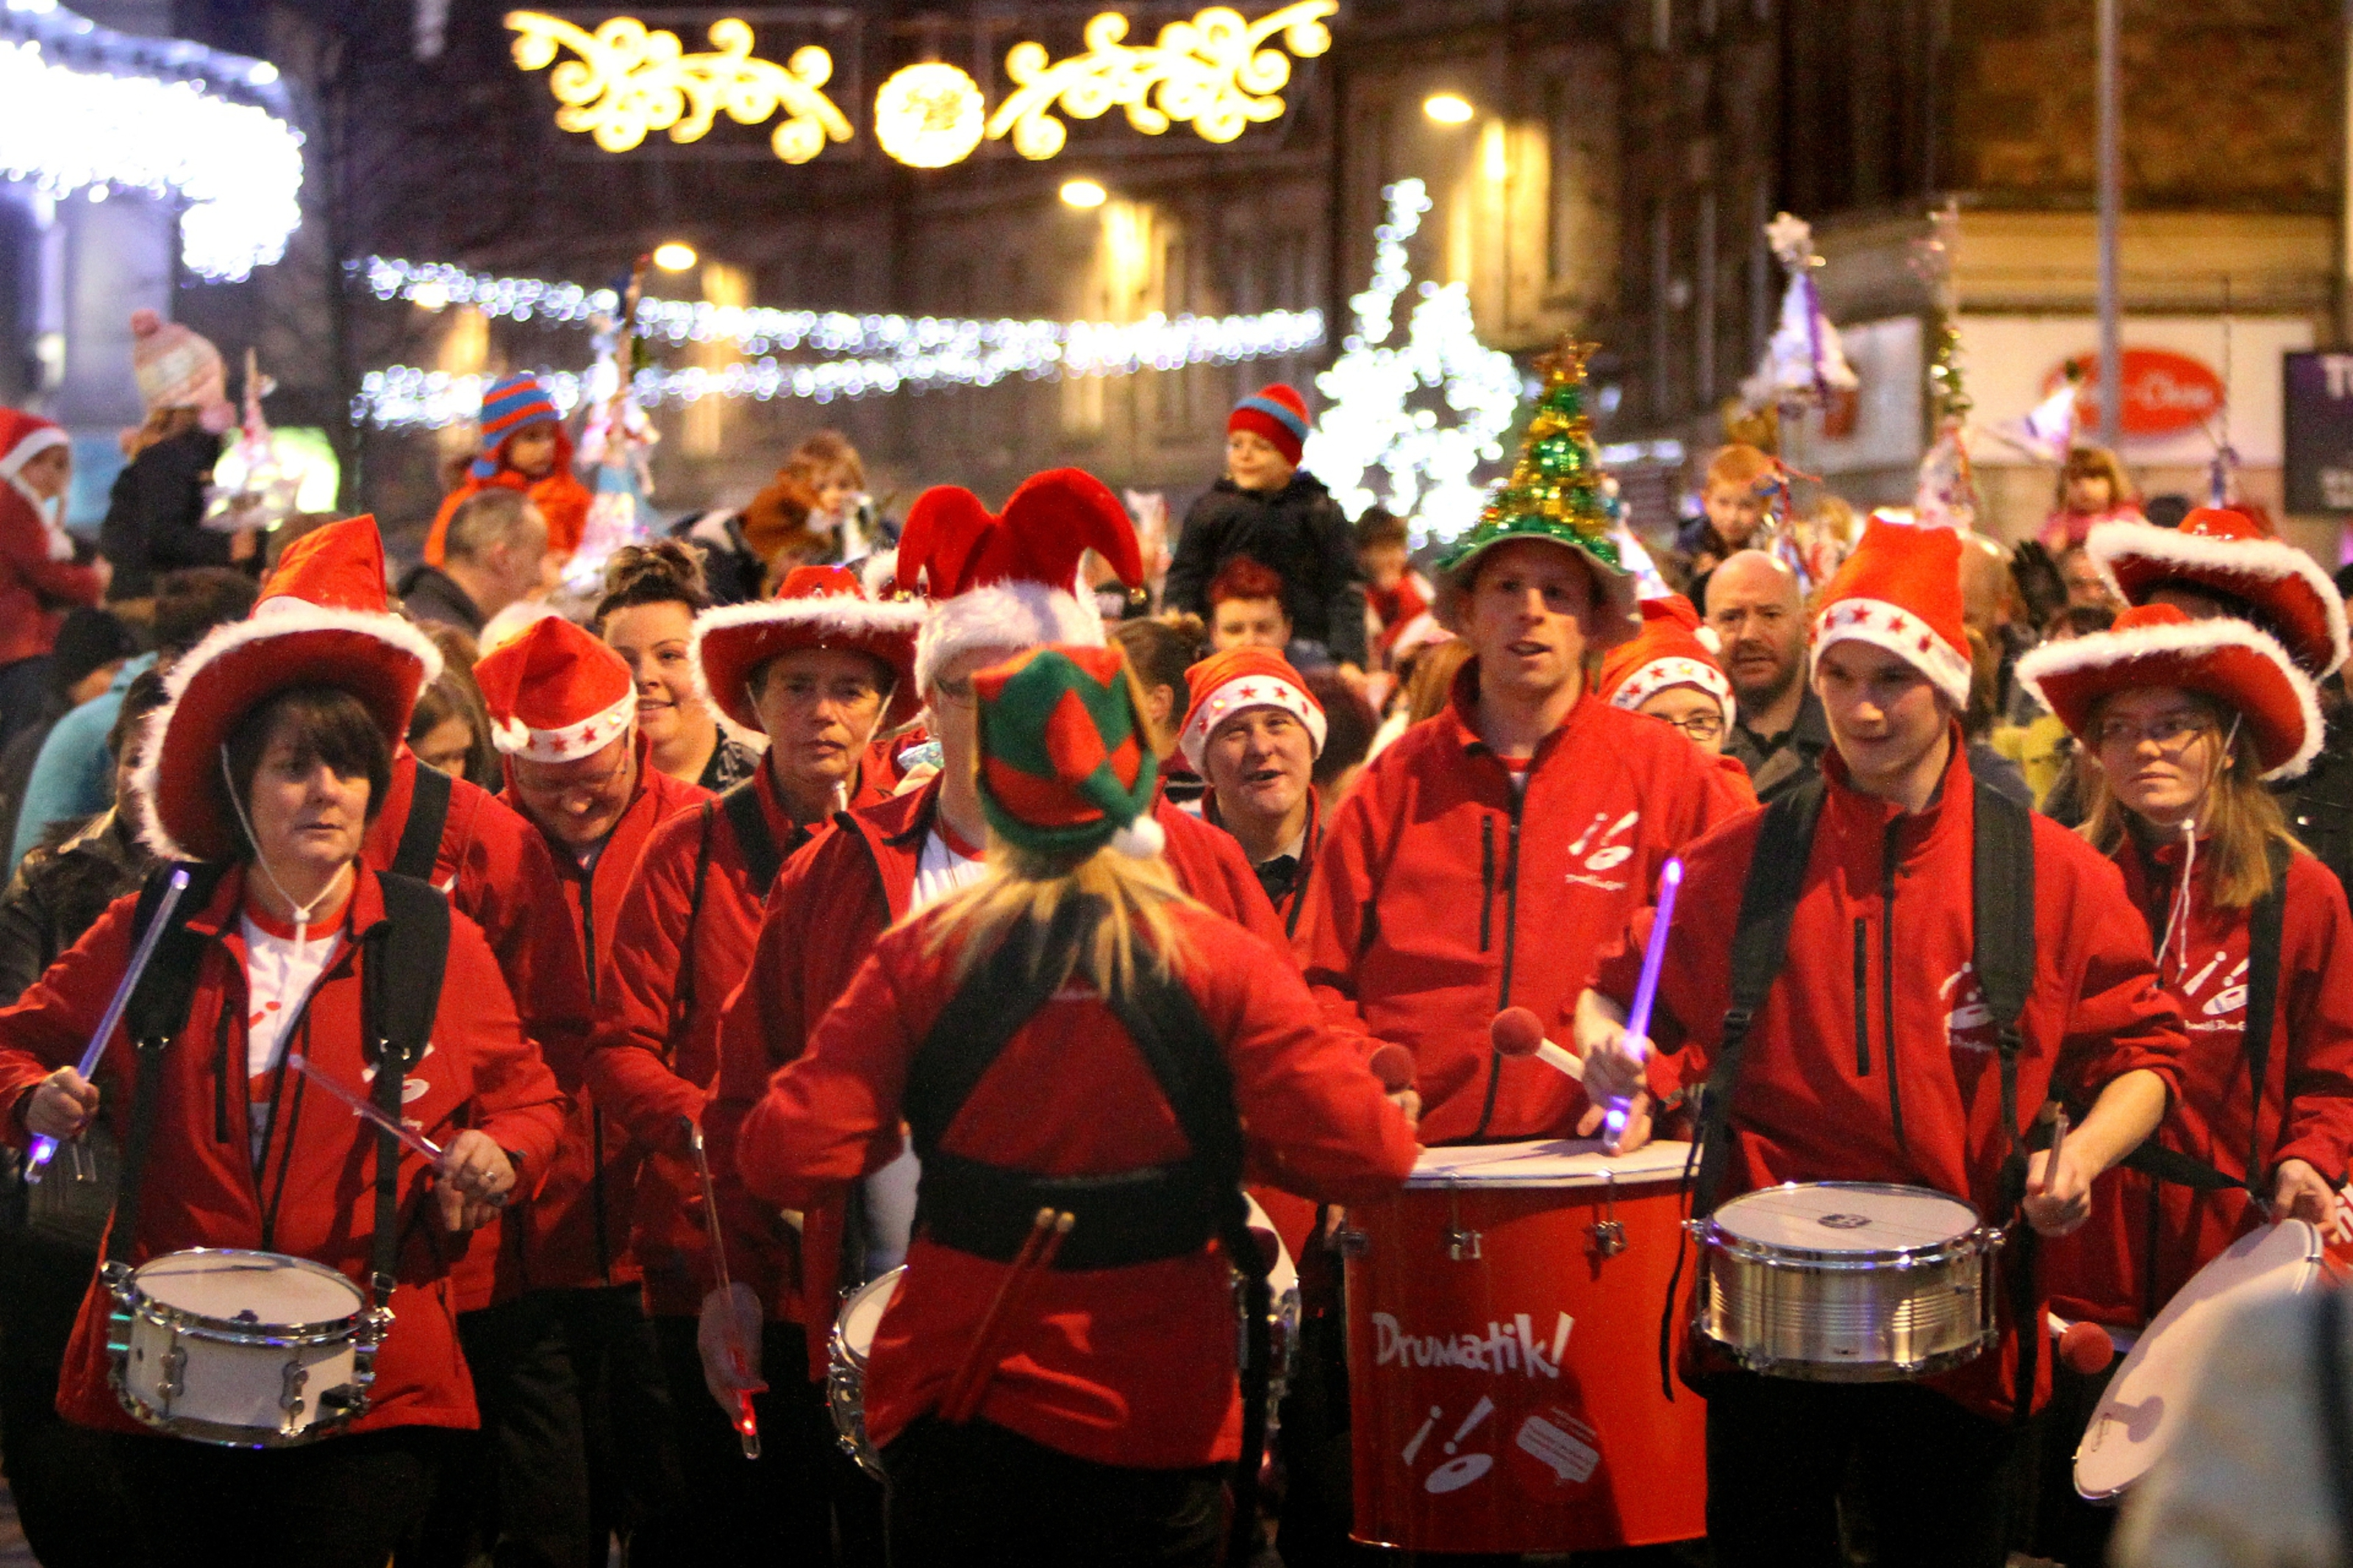 Kirkcaldy4All organised the lantern parade and Christmas lights switch-on.